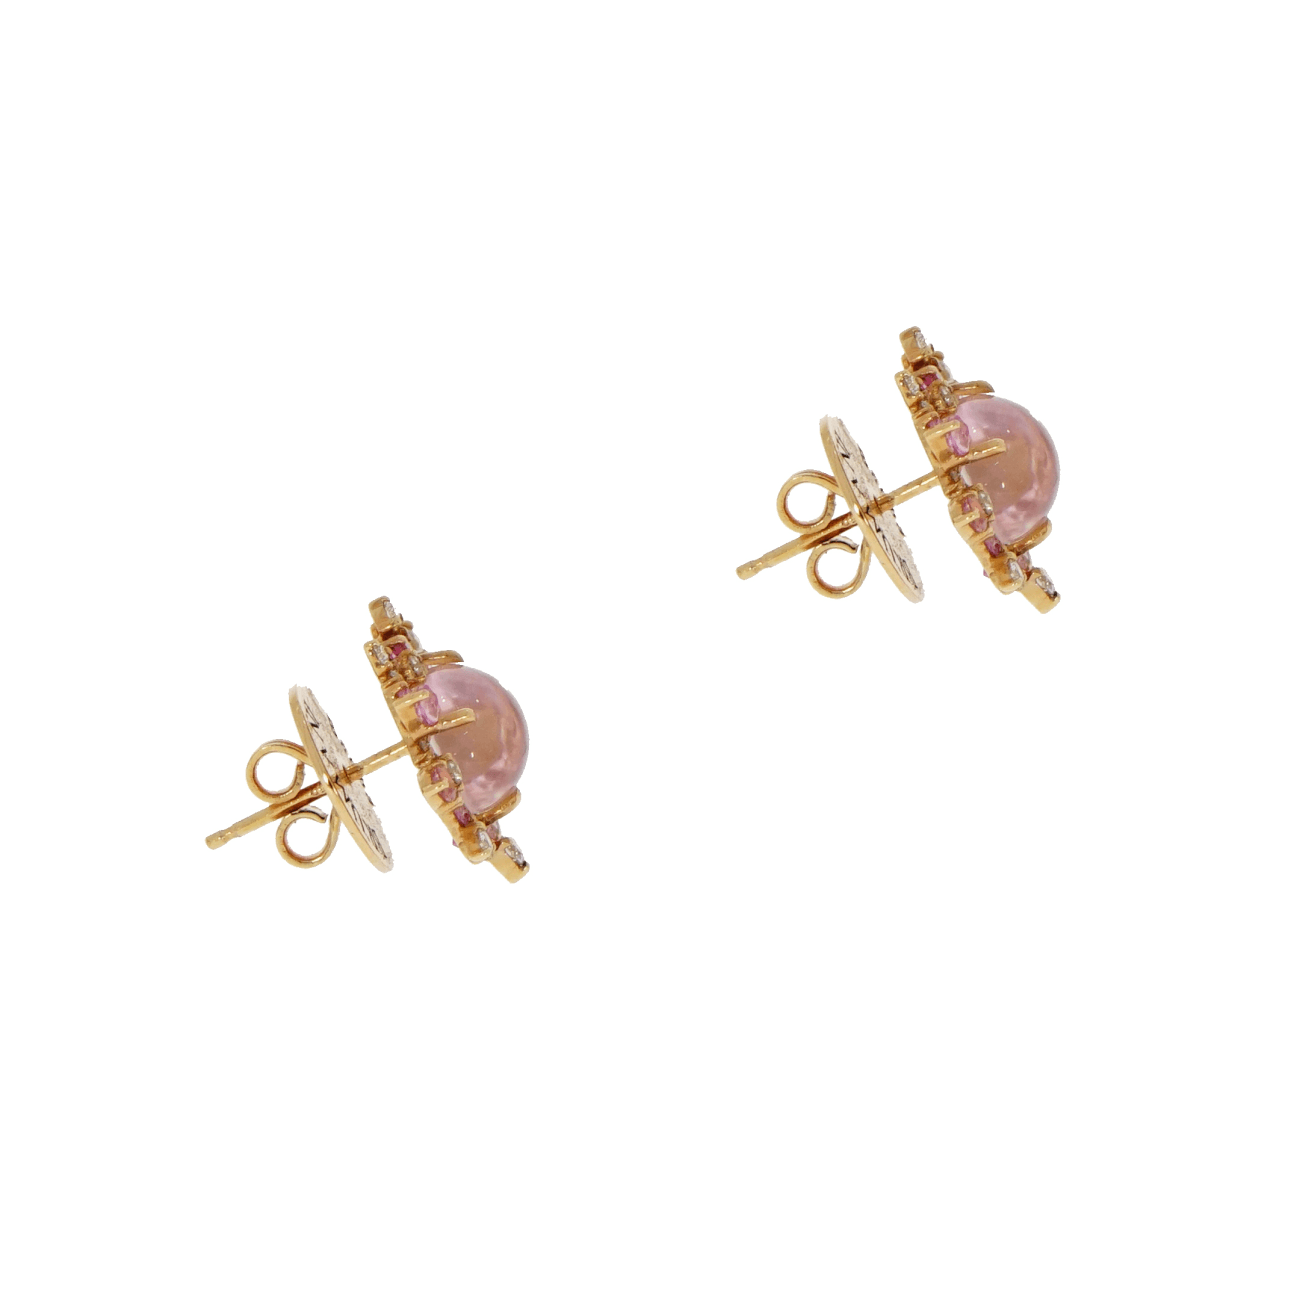 Brumani Jewelry - Baoba Pink Stud Earrings | Manfredi Jewels